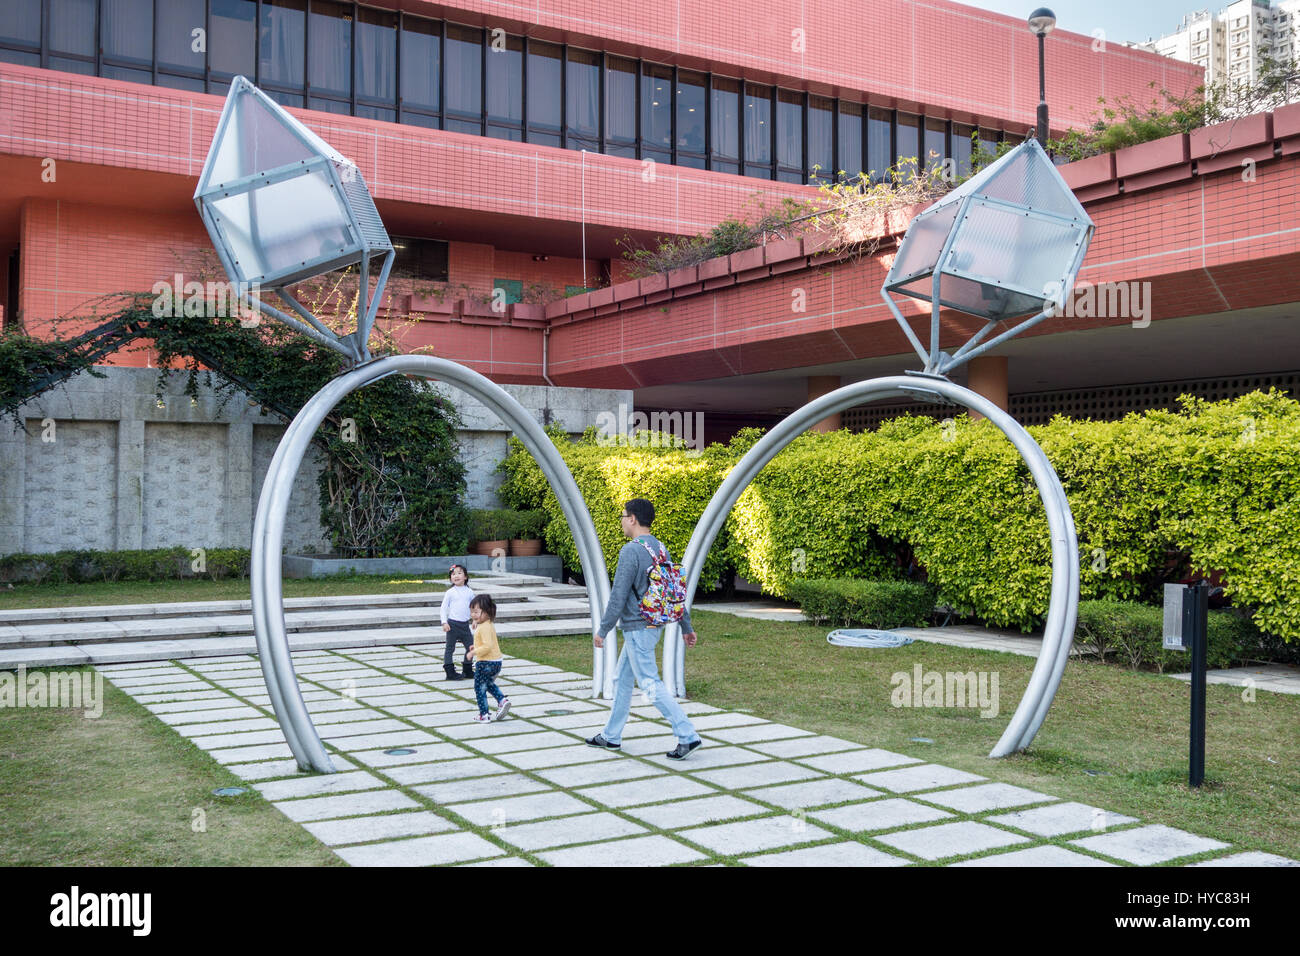 Sculpture of giant engagement rings in Hong Kong - Stock Image